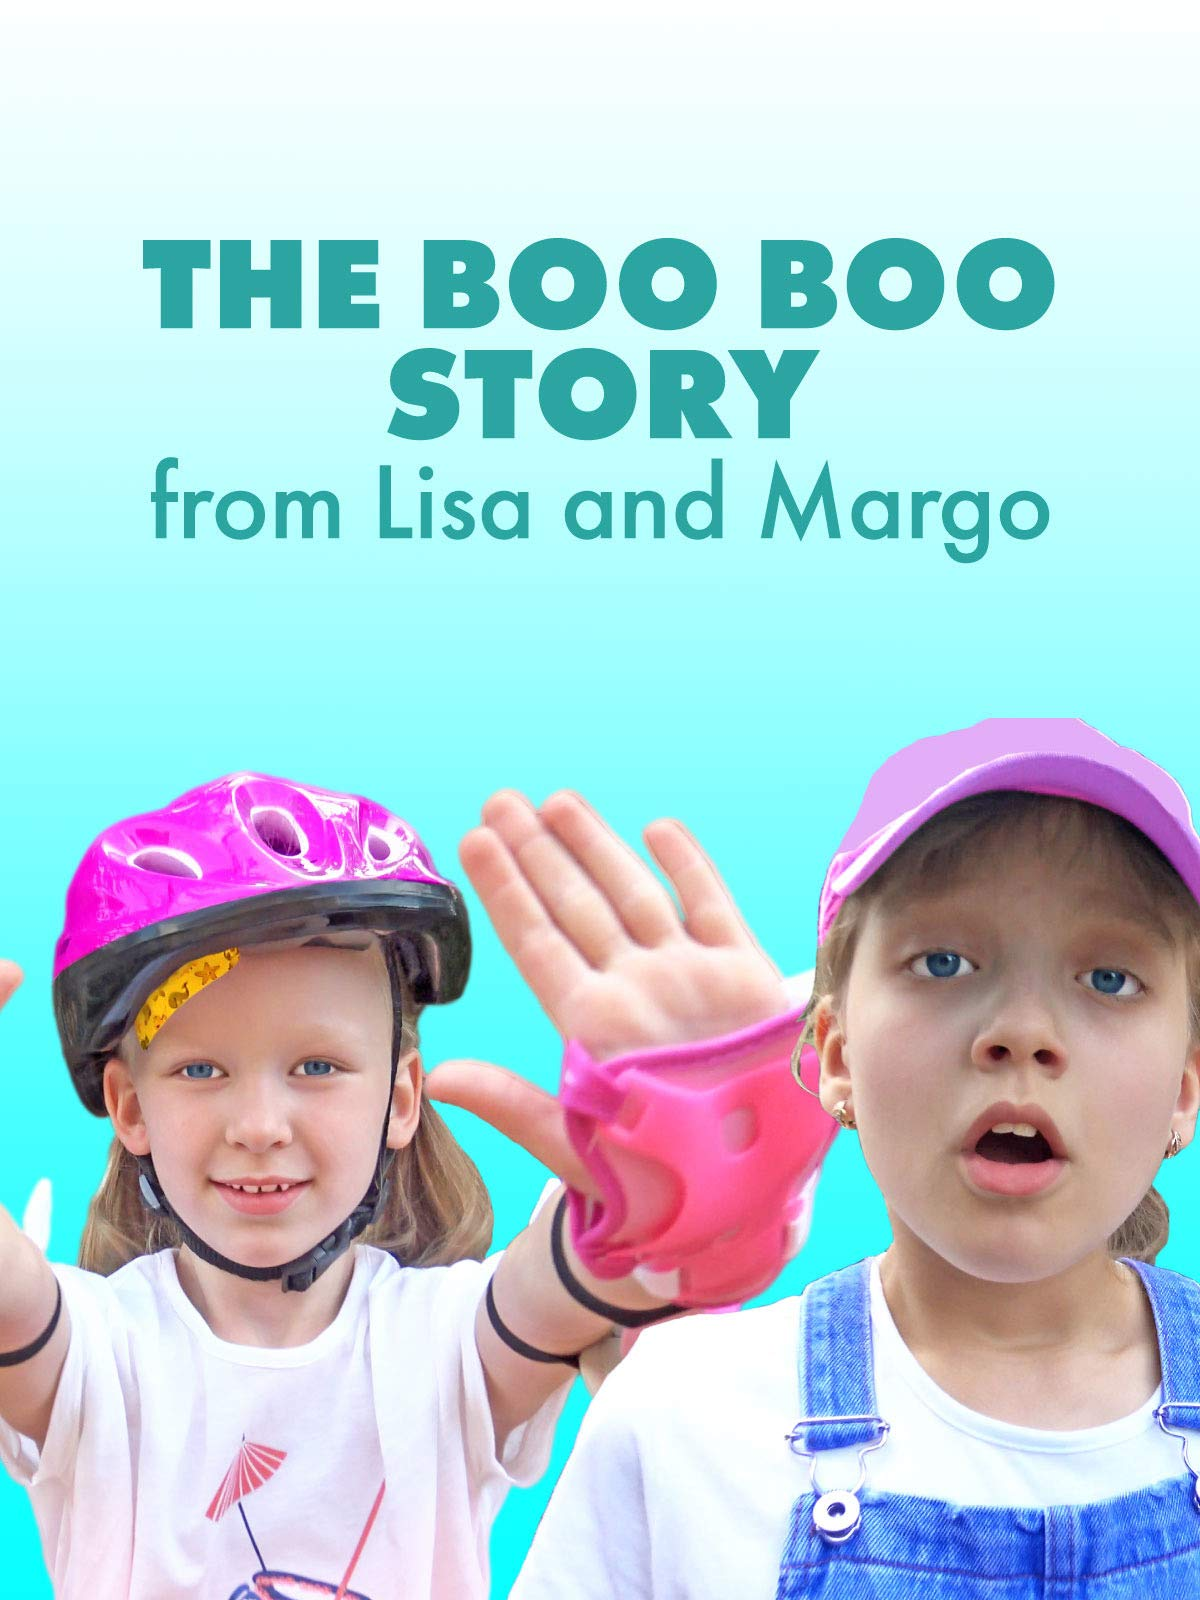 The Boo Boo Story from Lisa and Margo